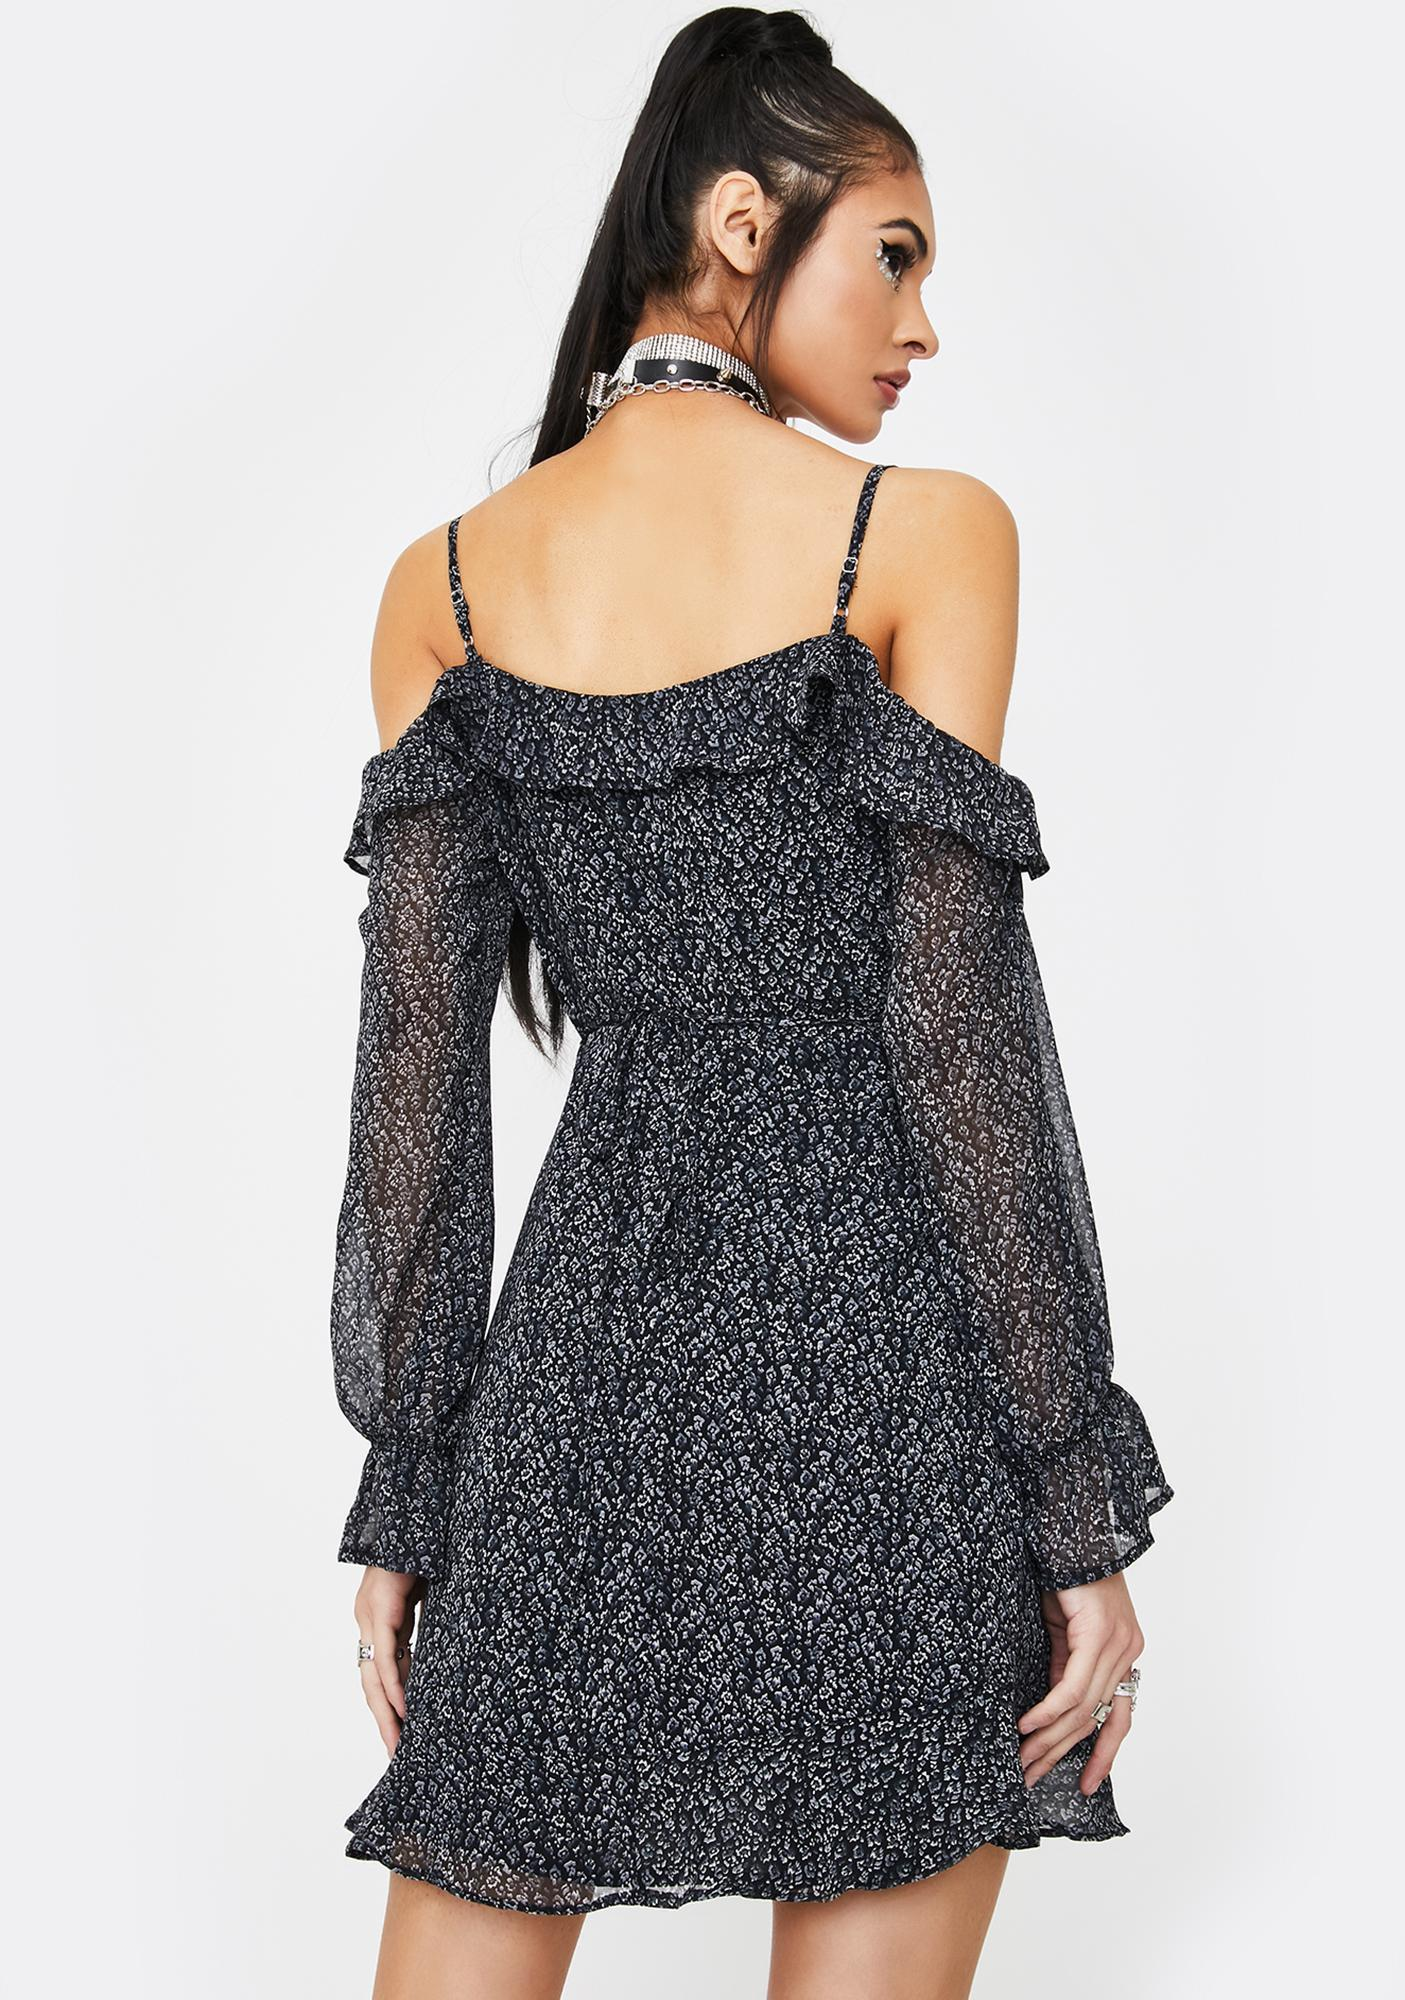 Honey Punch Black Ruffle Off The Shoulder Dress